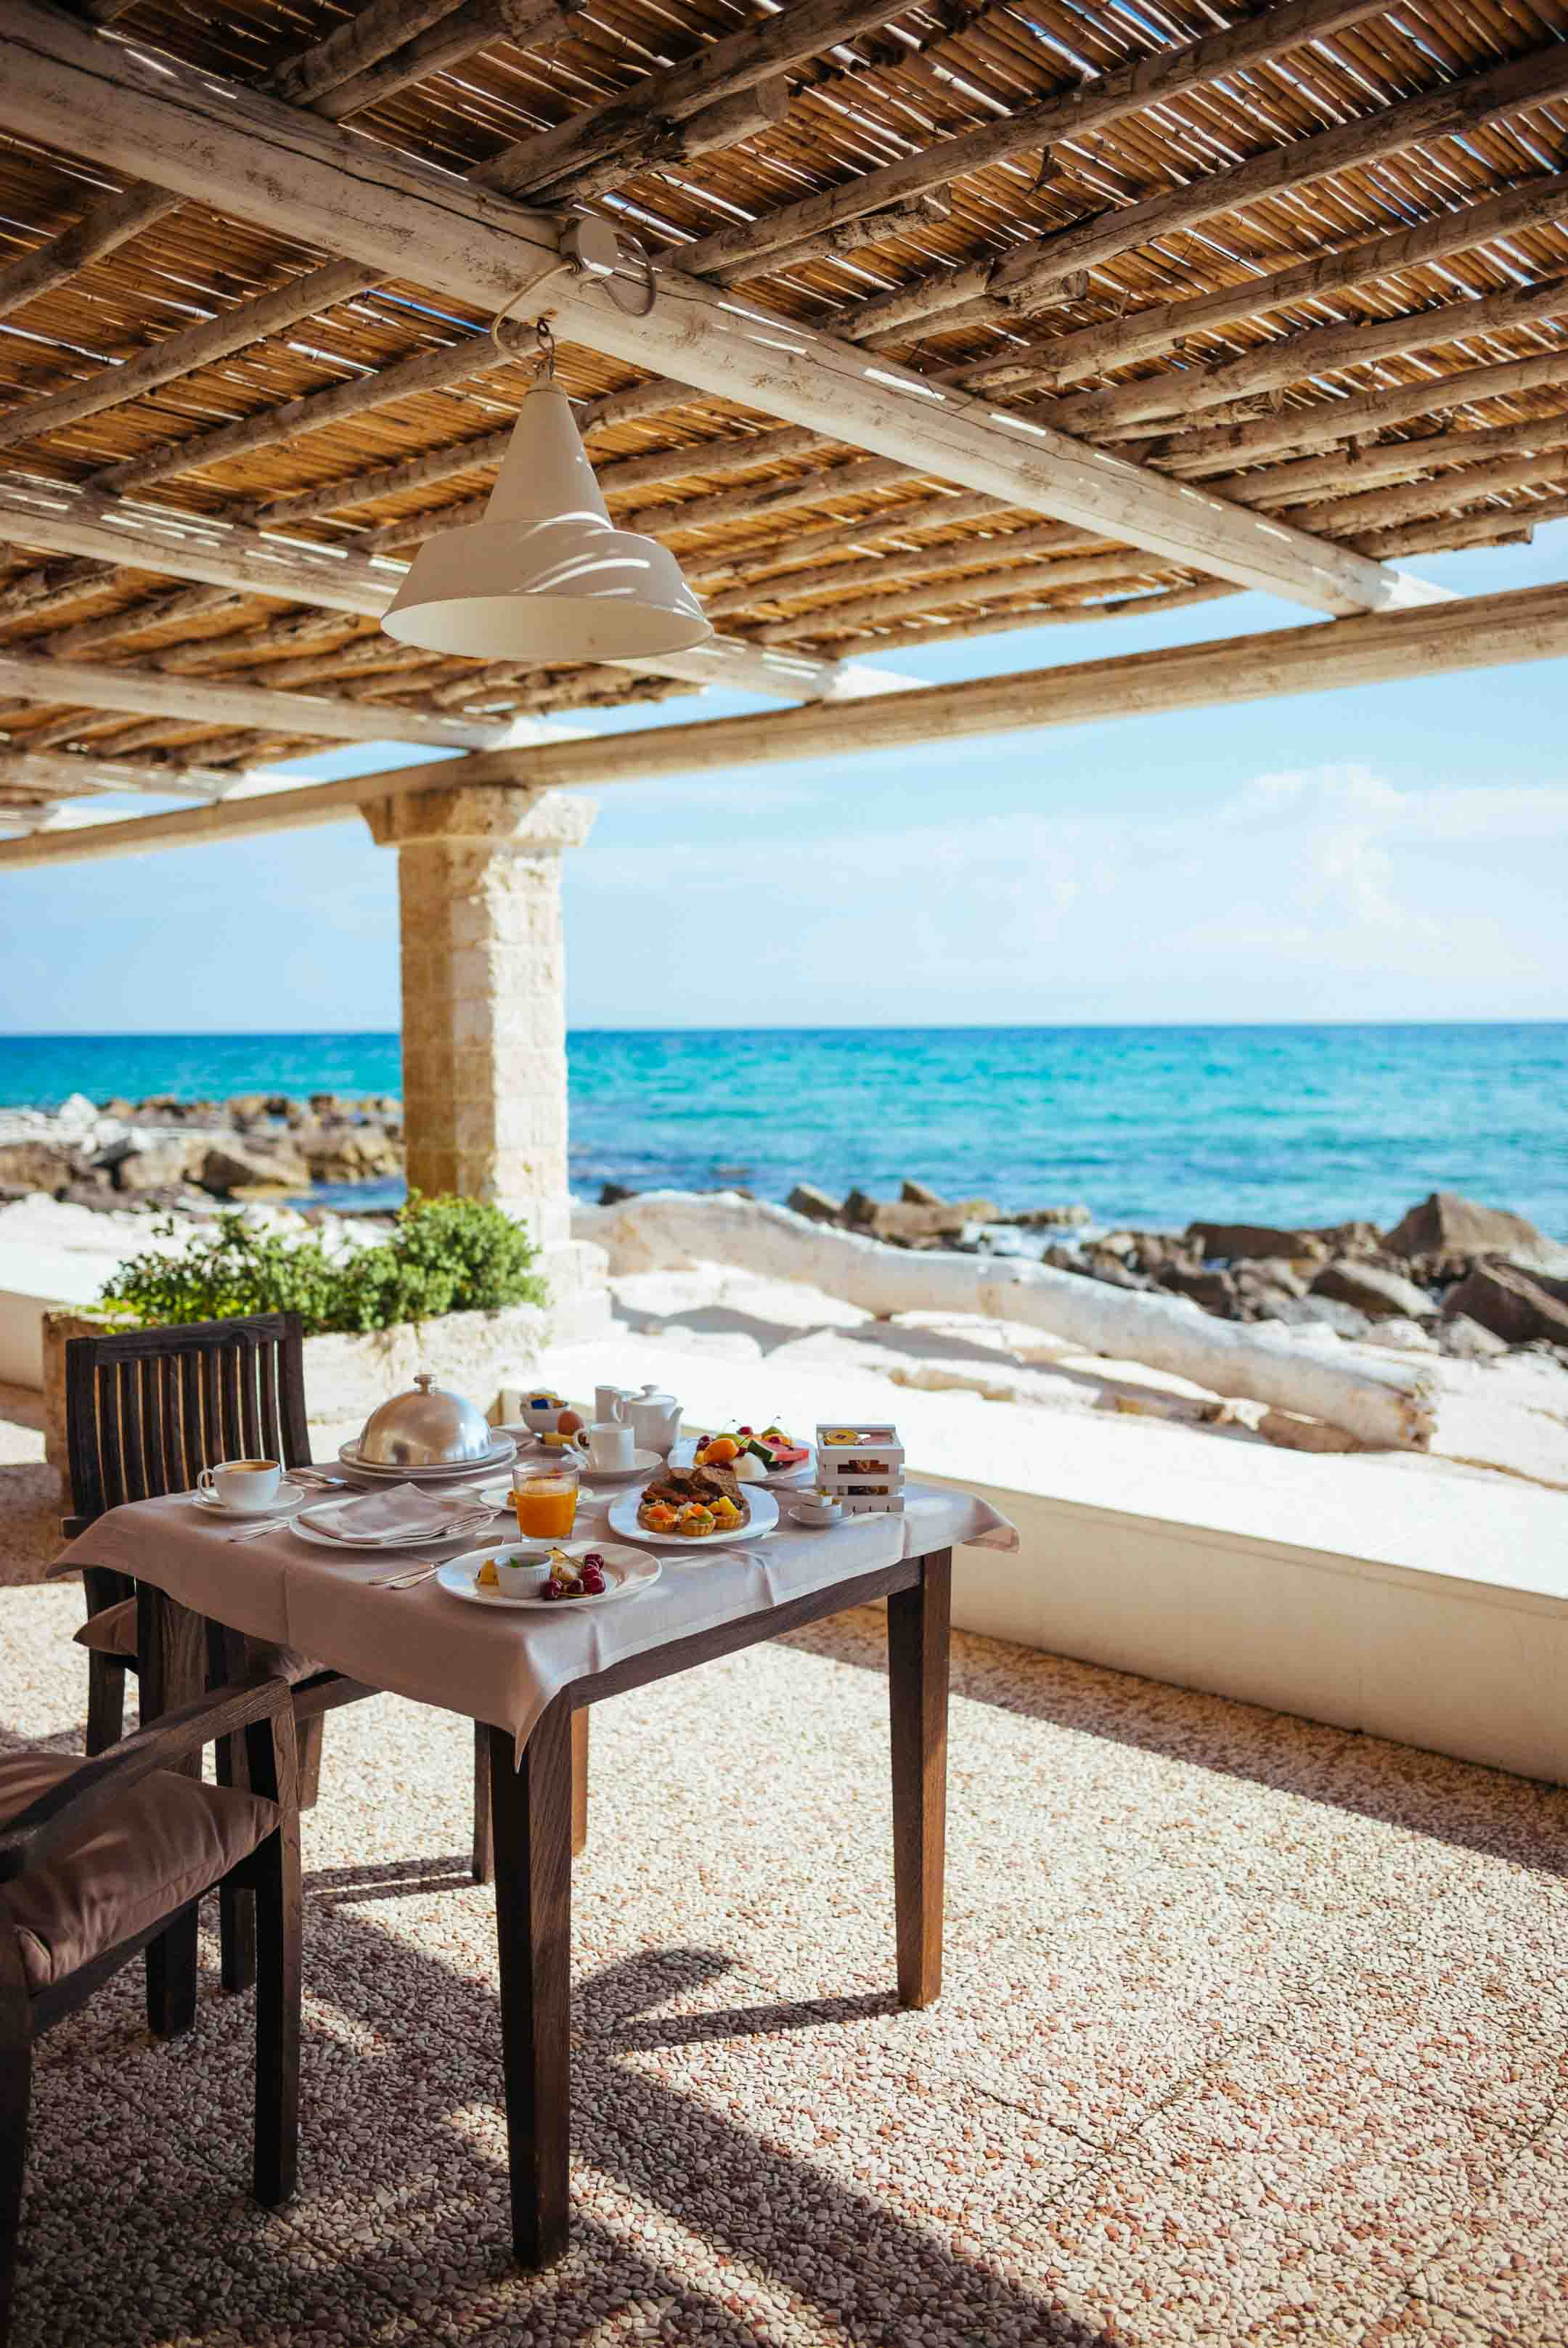 Custom breakfast is served each morning to your patio overlooking the ocean in this luxury Puglia hotel La Peschiera south of Monopoli, Italy, The Taste SF